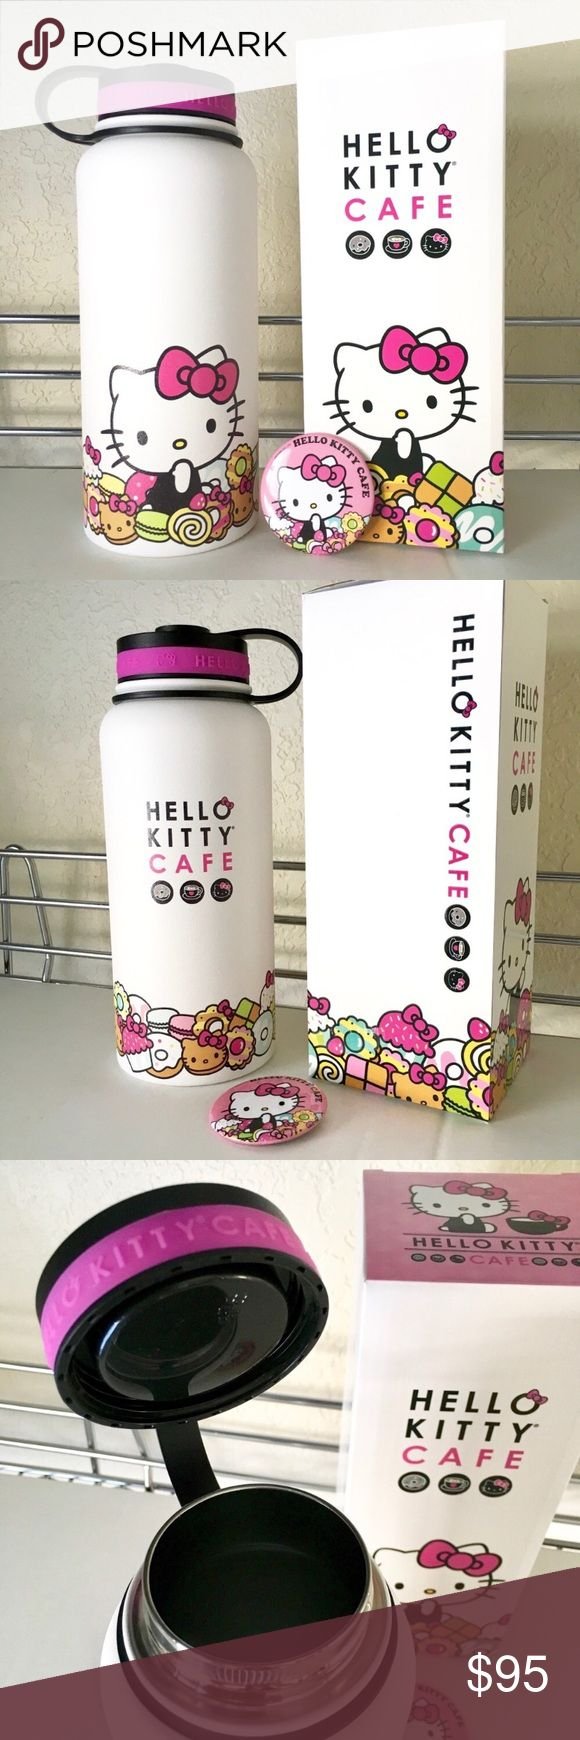 BRAND NEW! Hello Kitty Thermal Bottle Limited Edition 32 oz Hello Kitty Thermal Bottle! Sold only on the Hello Kitty Cafe Truck. Matte outer finish with twist off cap. Super hard to find adorable collectors edition. Plus a free button!   Price is firm. Hello Kitty Accessories